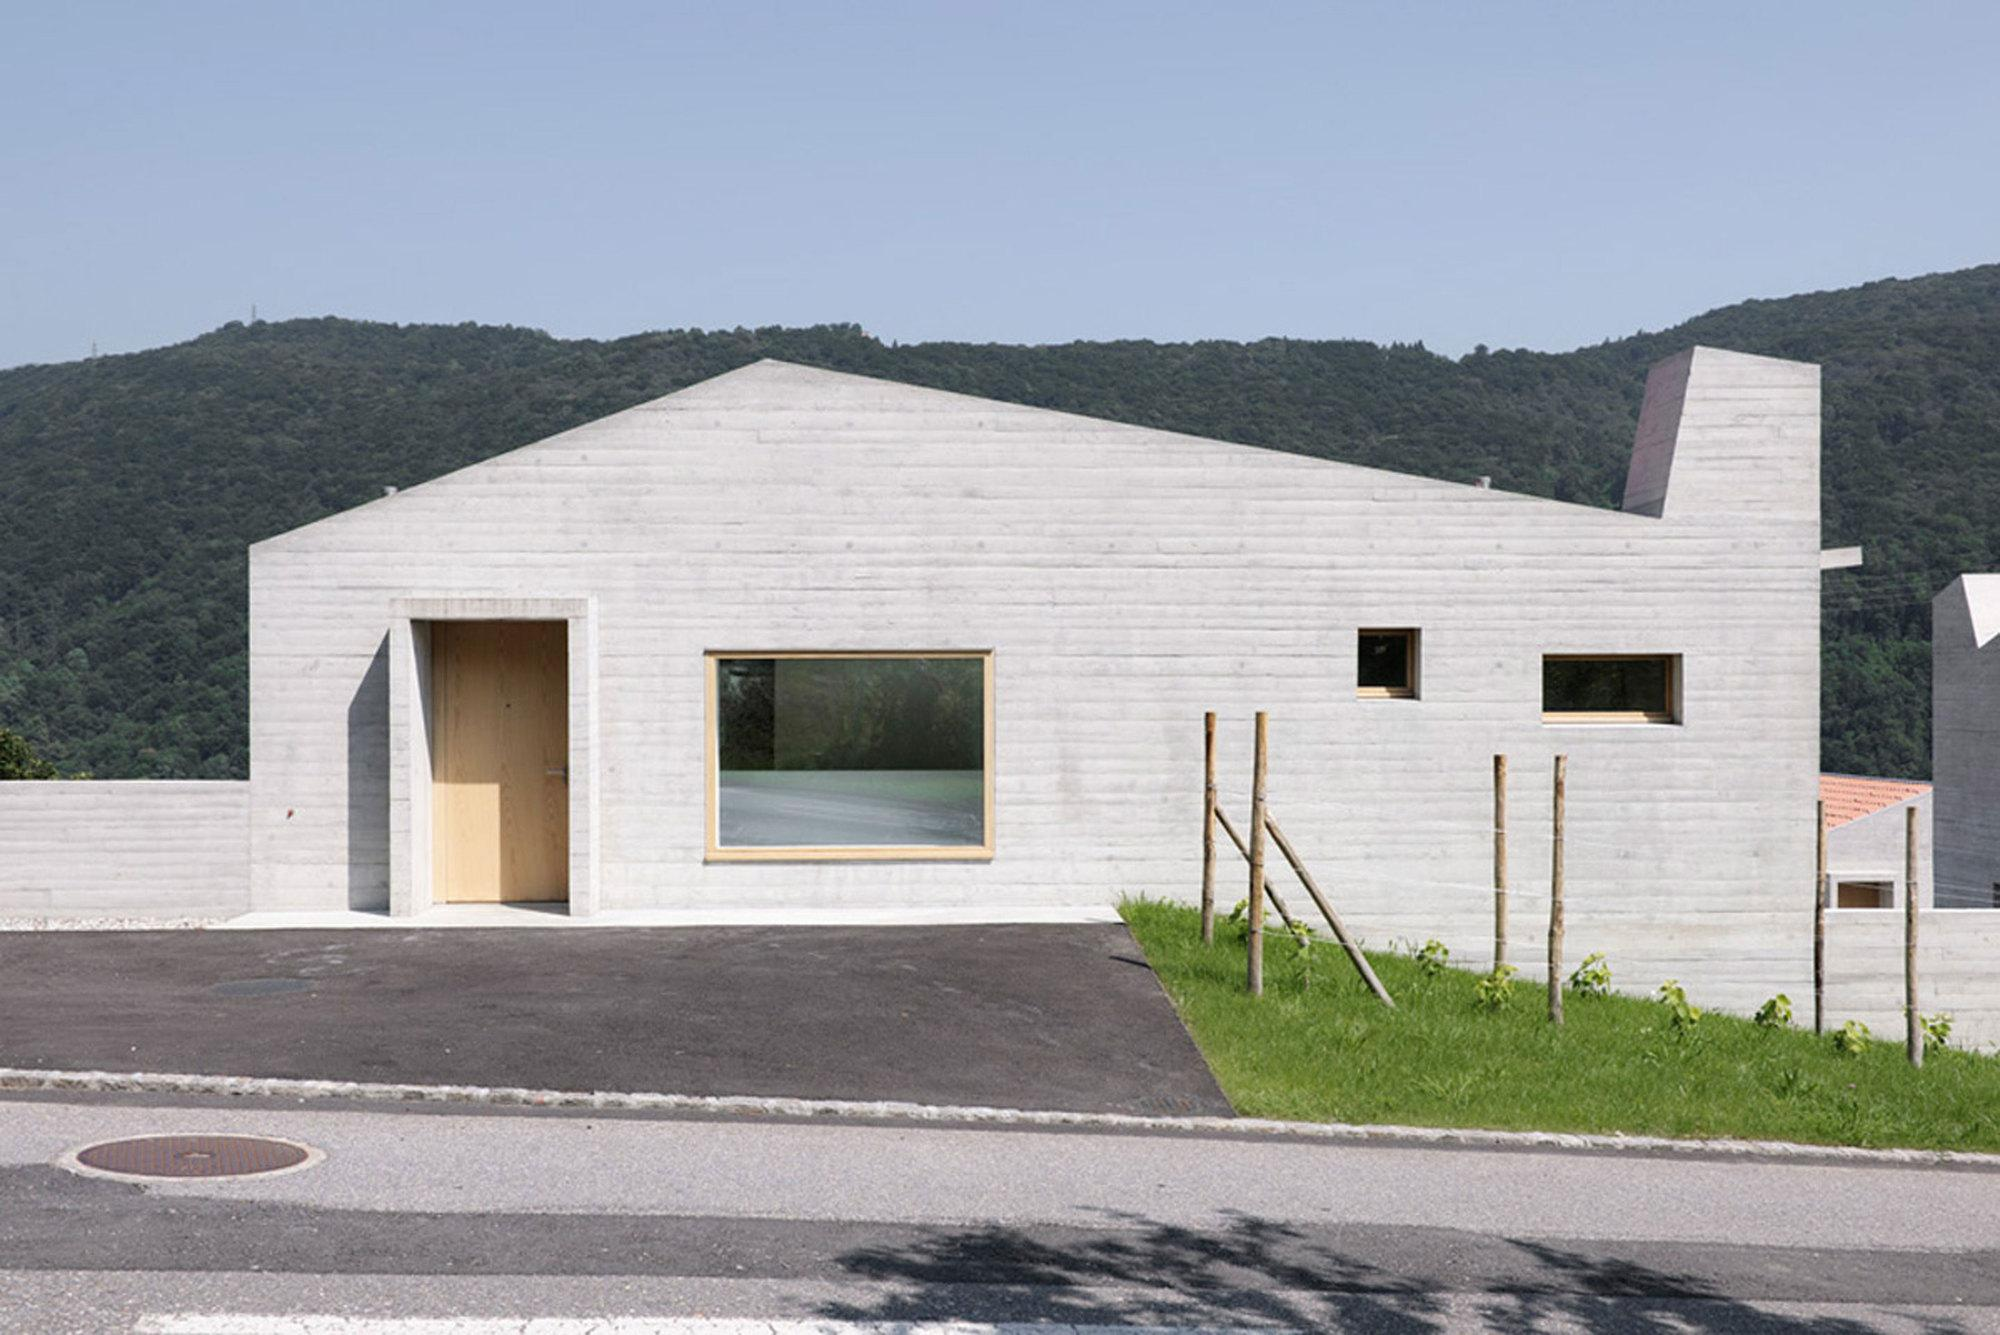 5 Houses in Barbengo by Studio Meyer e Piattini 3